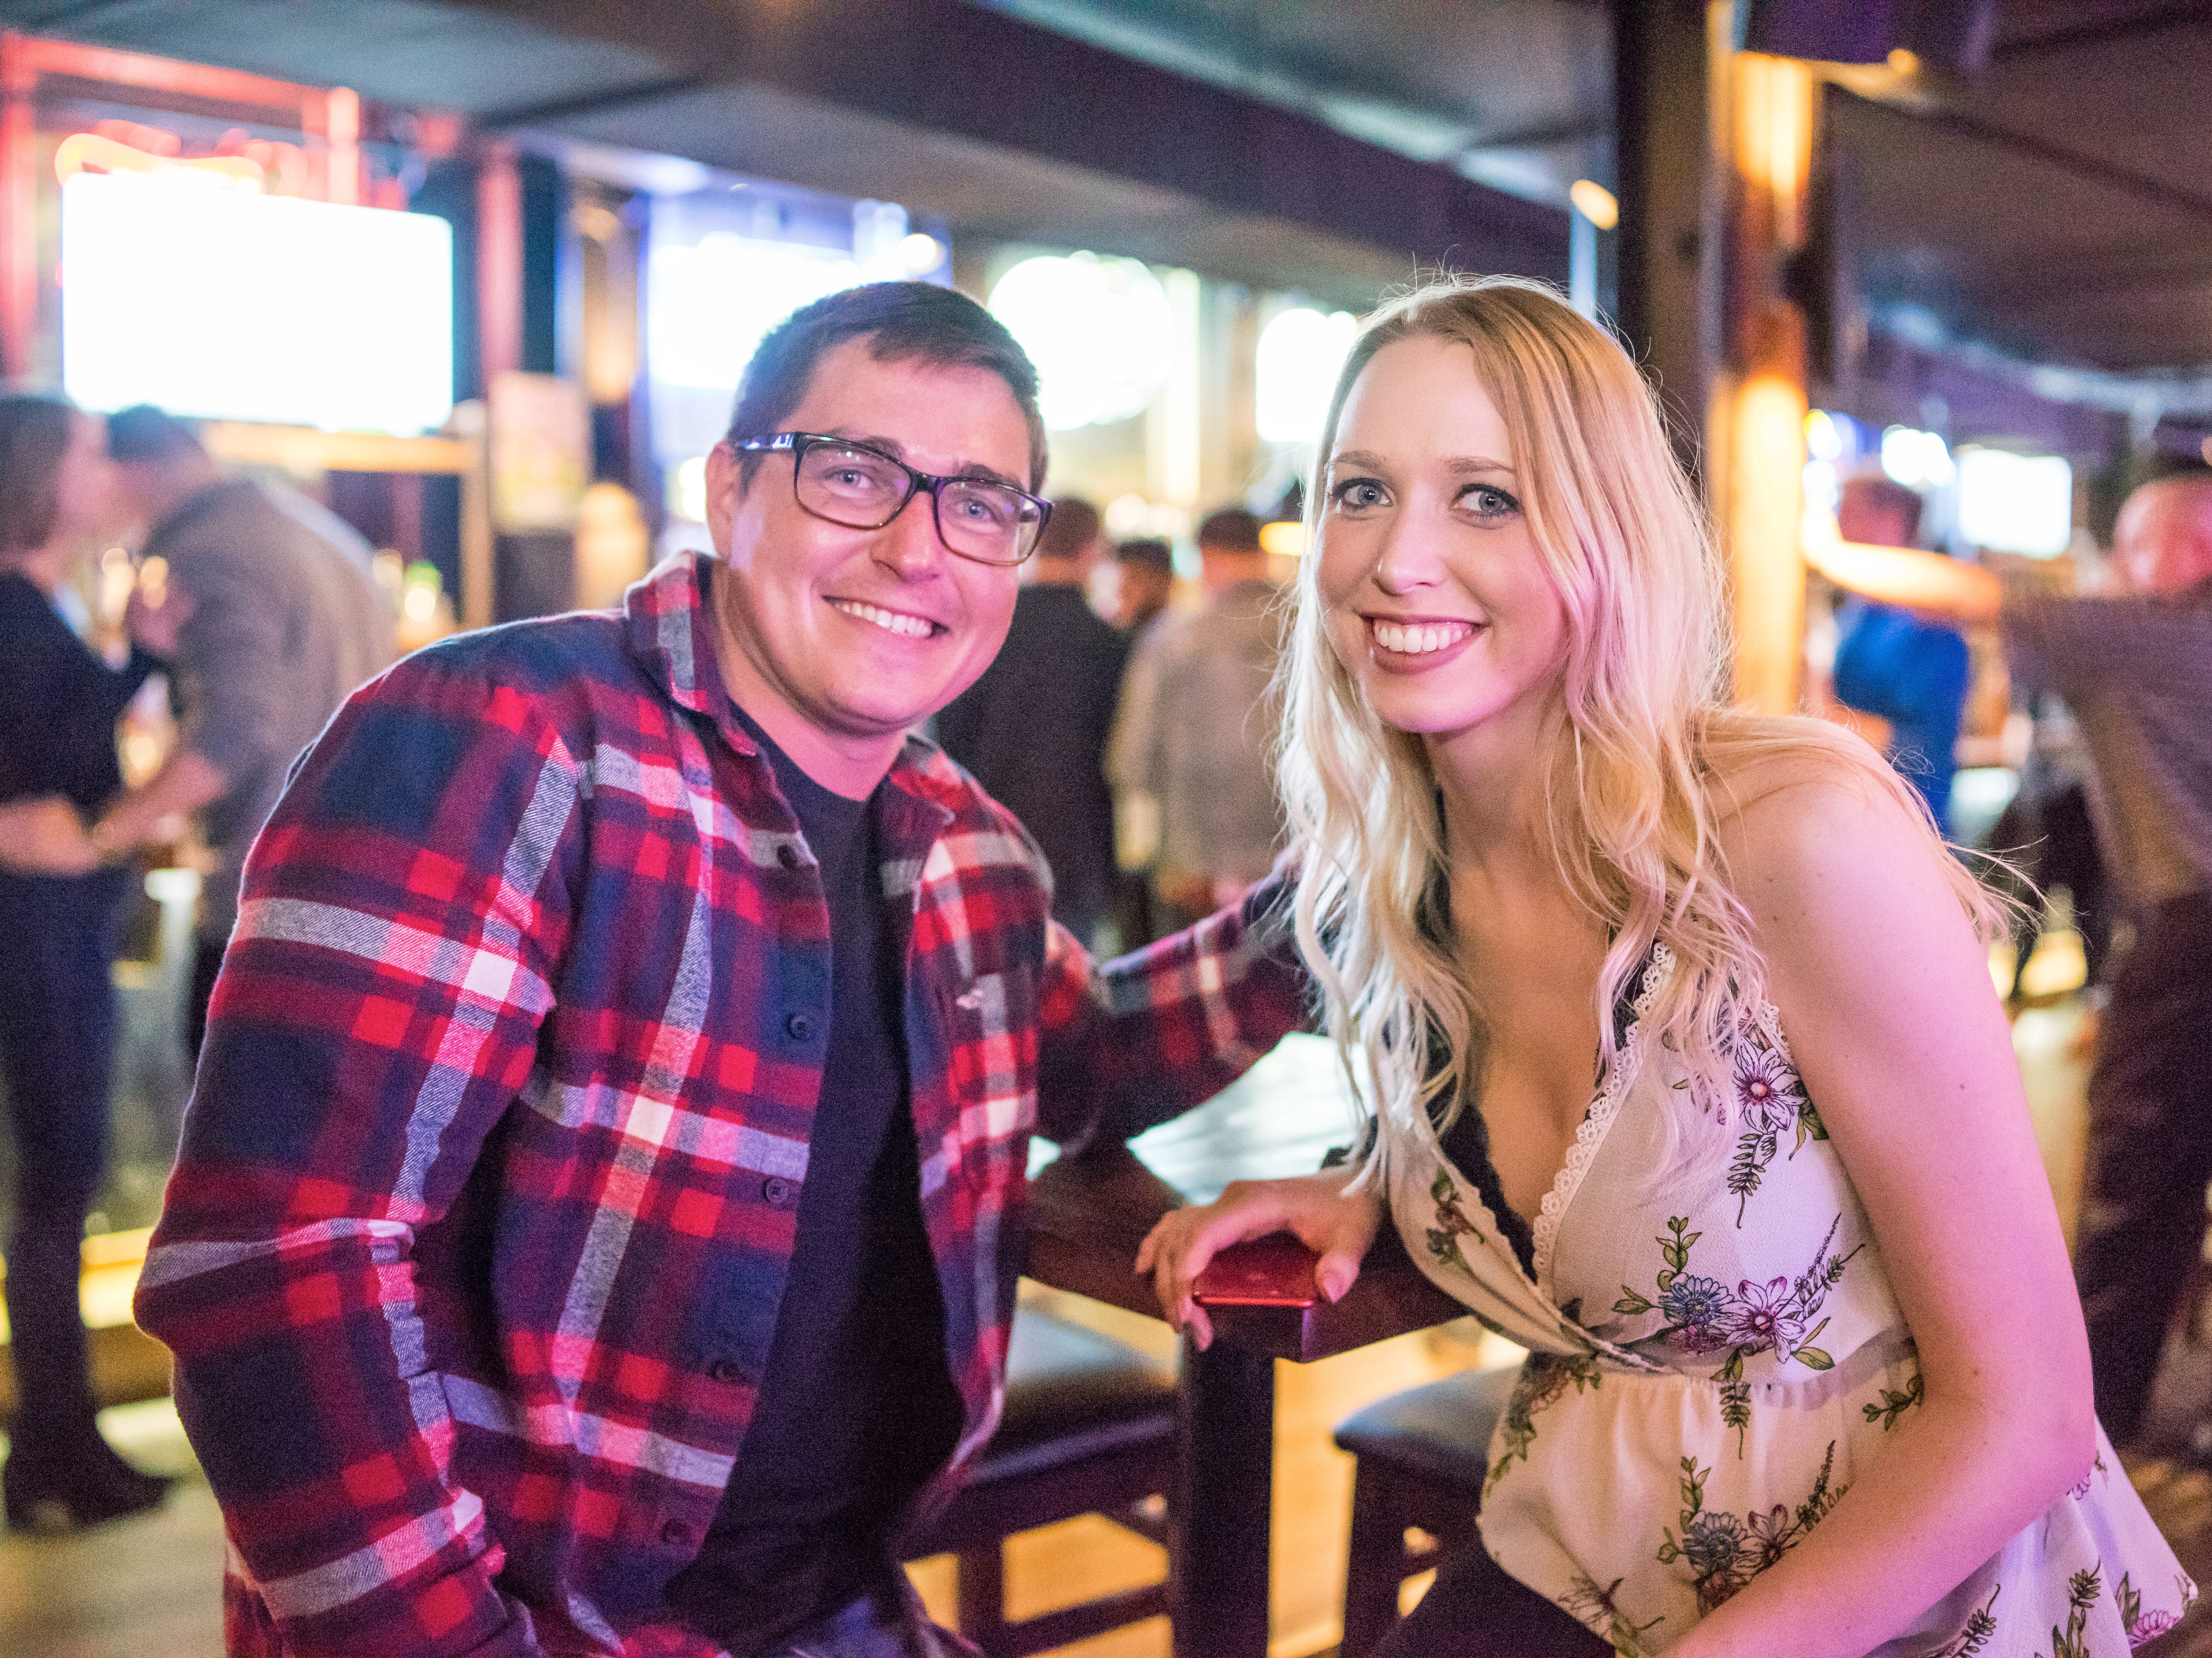 James Dean, 25, and Jenny Eschen, 25, both of Des Moines, enjoying their night out, Friday, March 15th, at Shags.